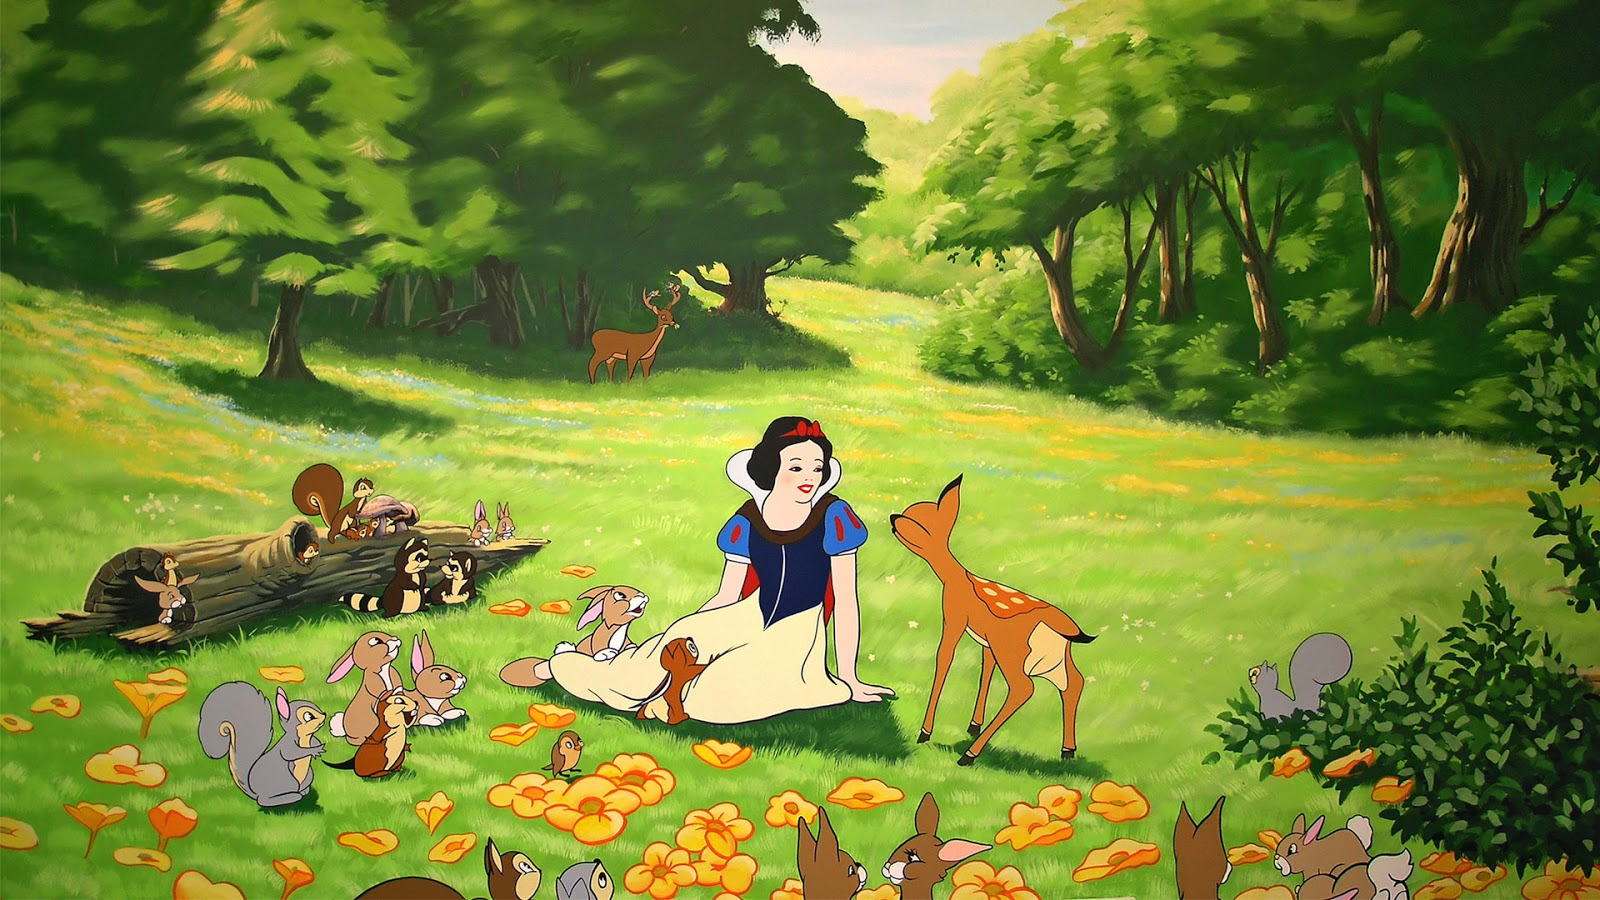 snow white iphone wallpaper - wallpapersafari